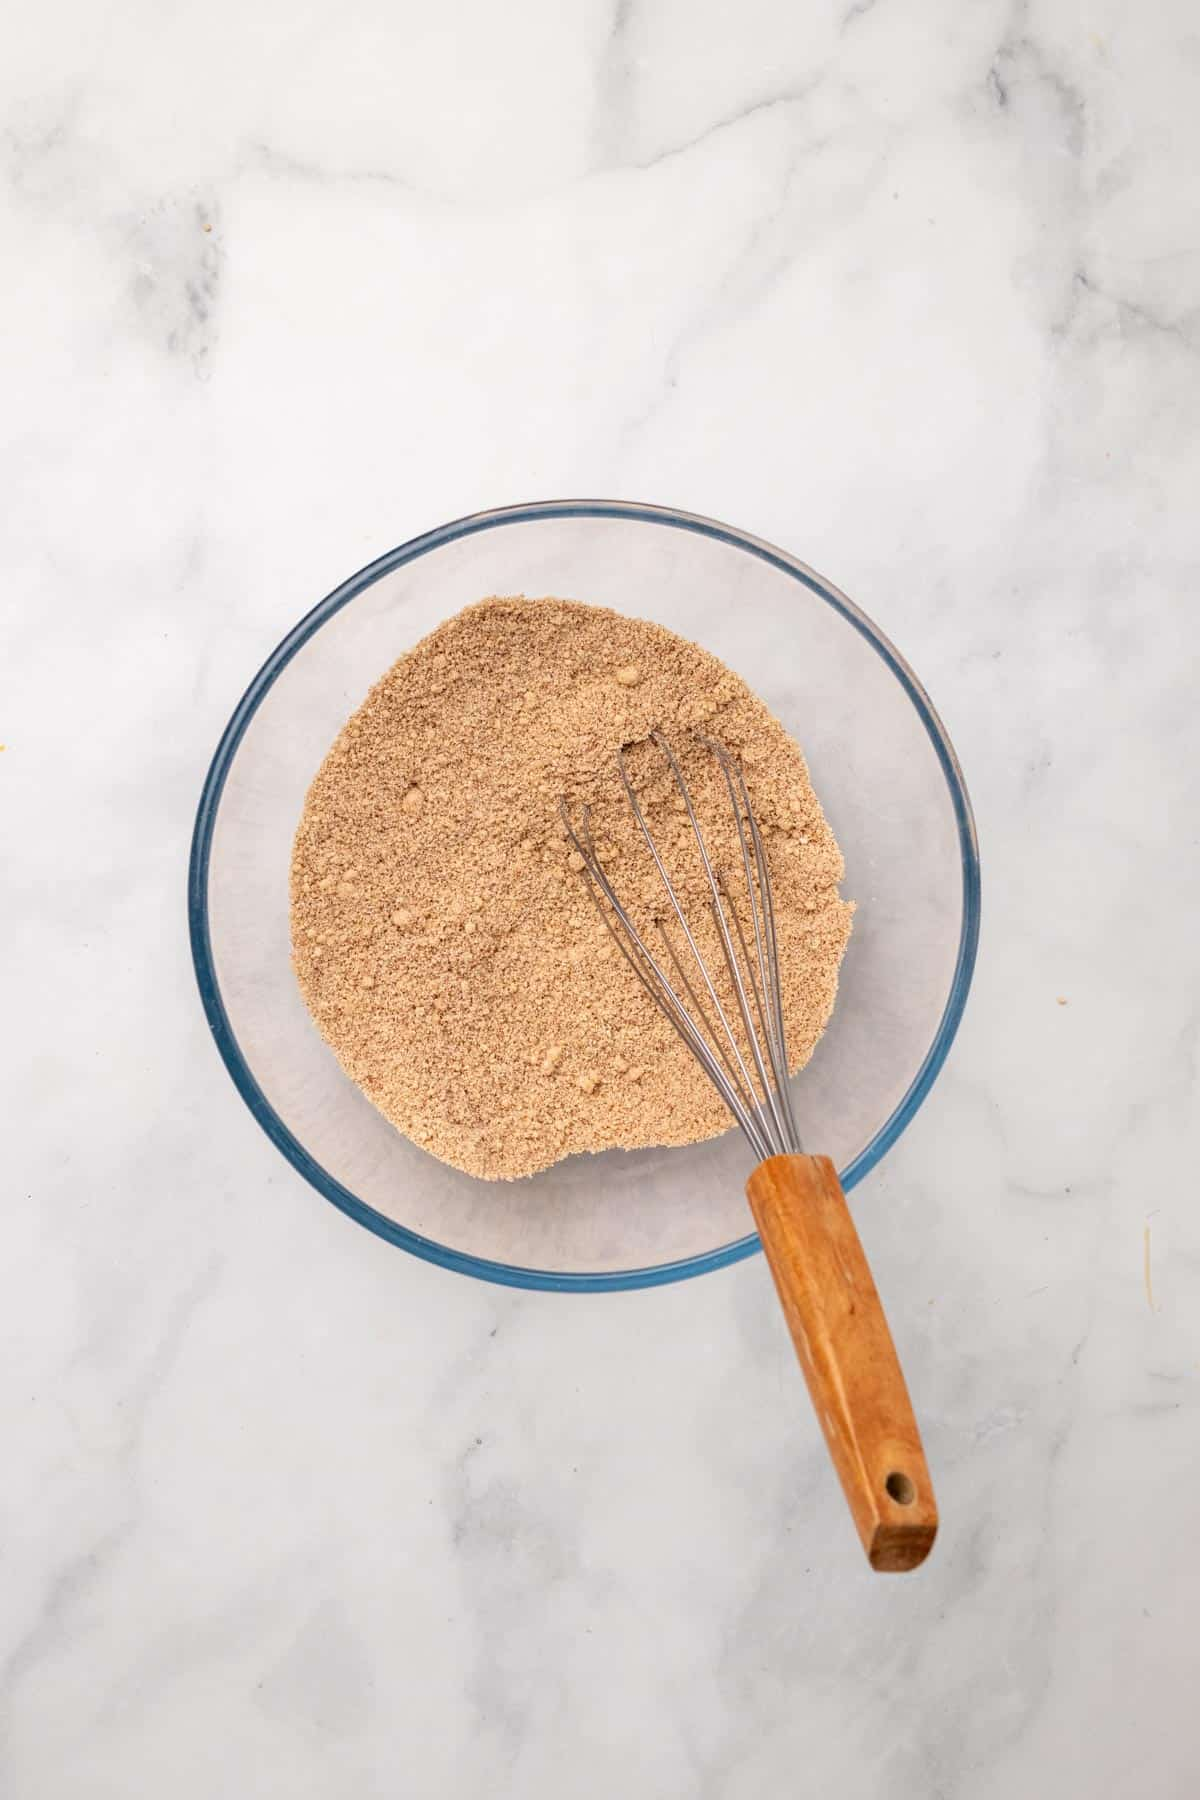 Dry ingredients in a glass bowl with a whisk